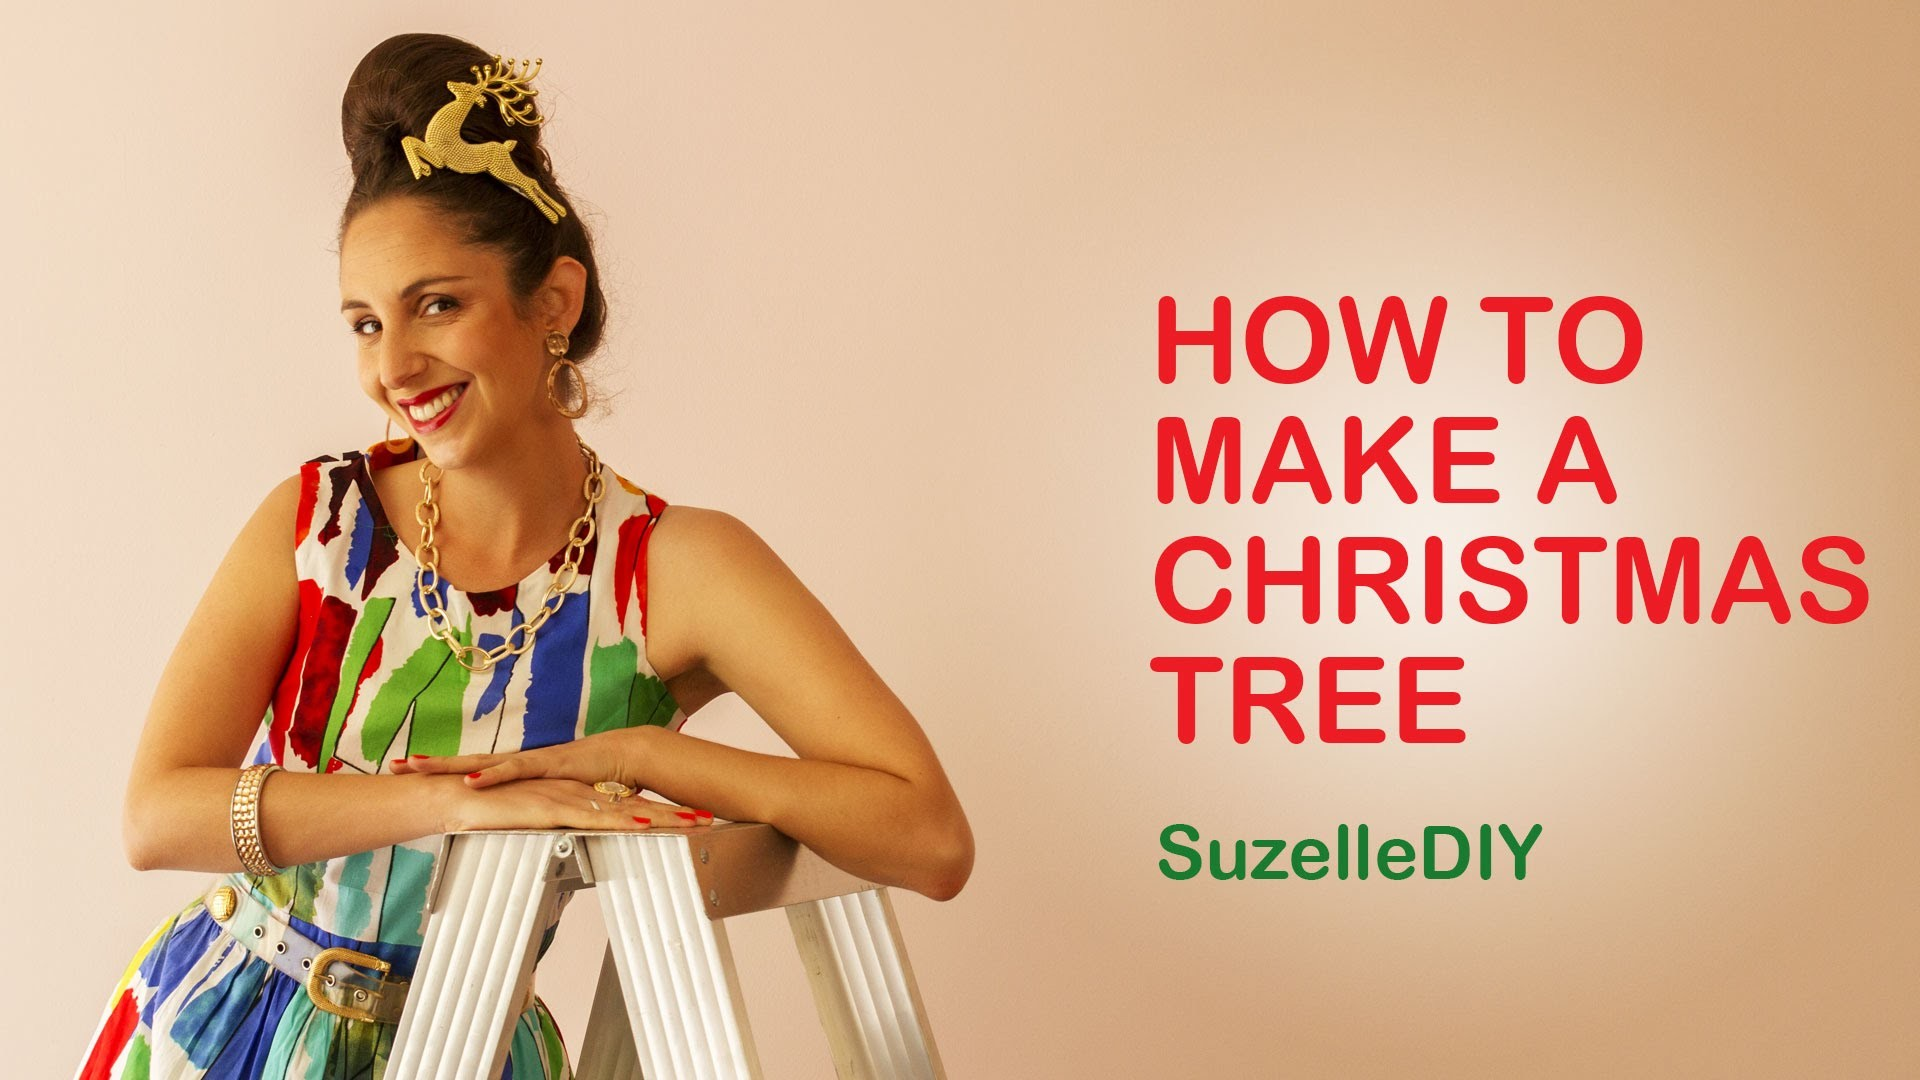 SuzelleDIY - How to Make a Christmas Tree